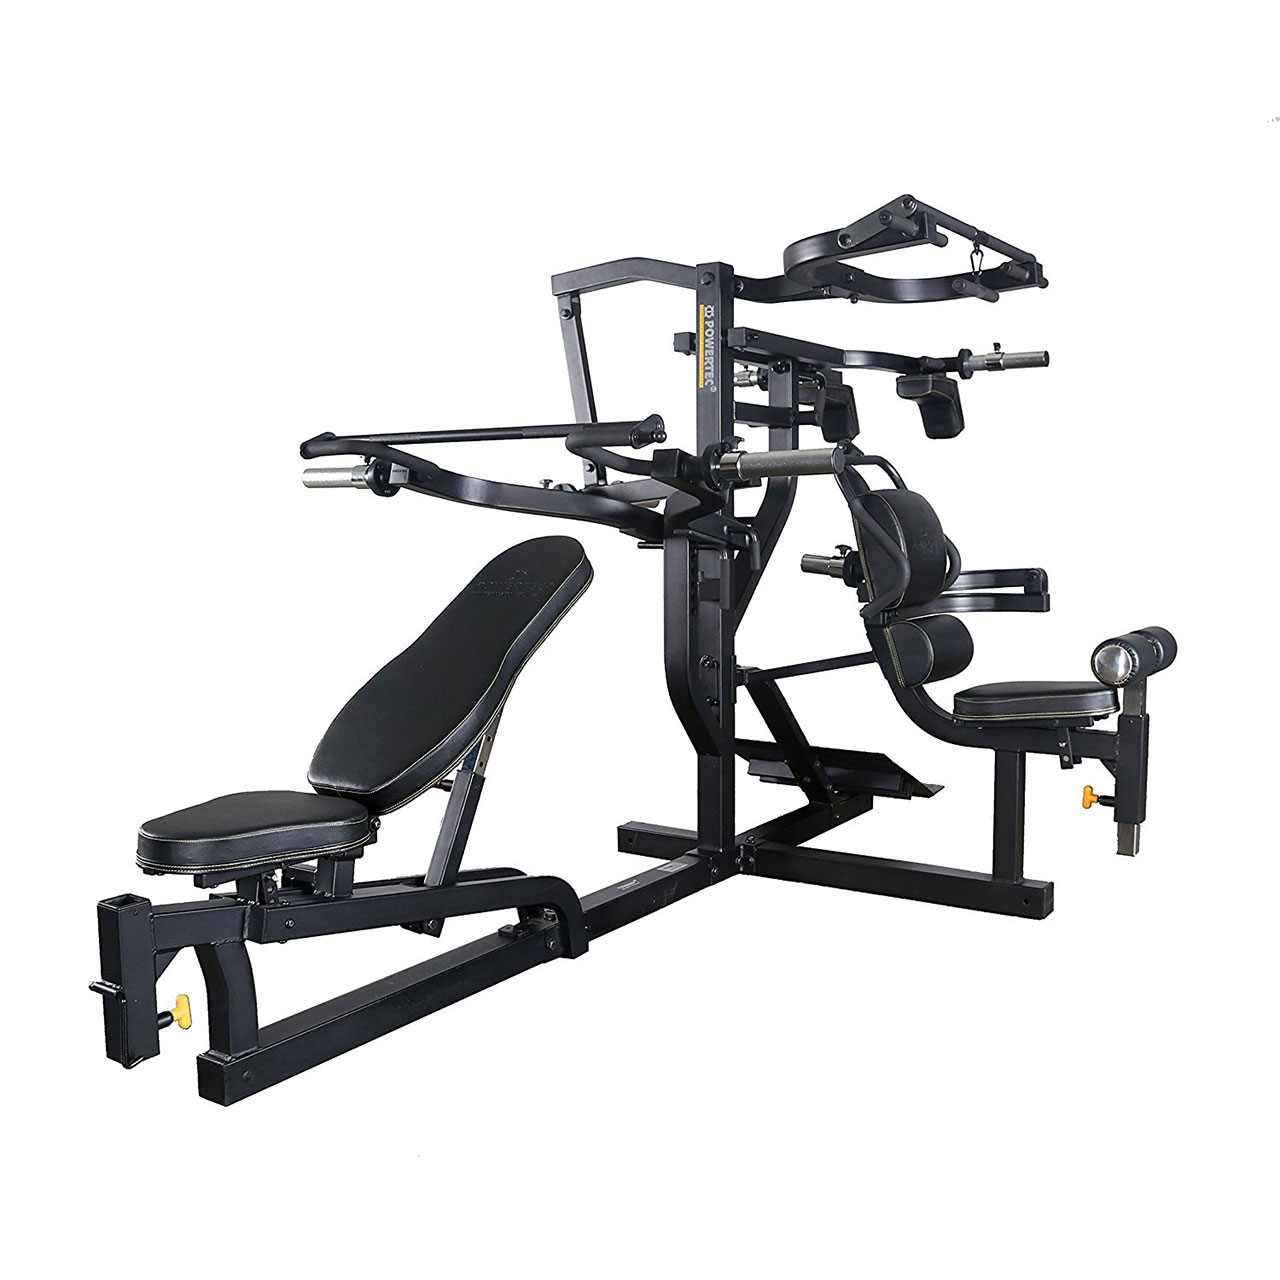 Powertec Workbench Multi System Black by Powertec